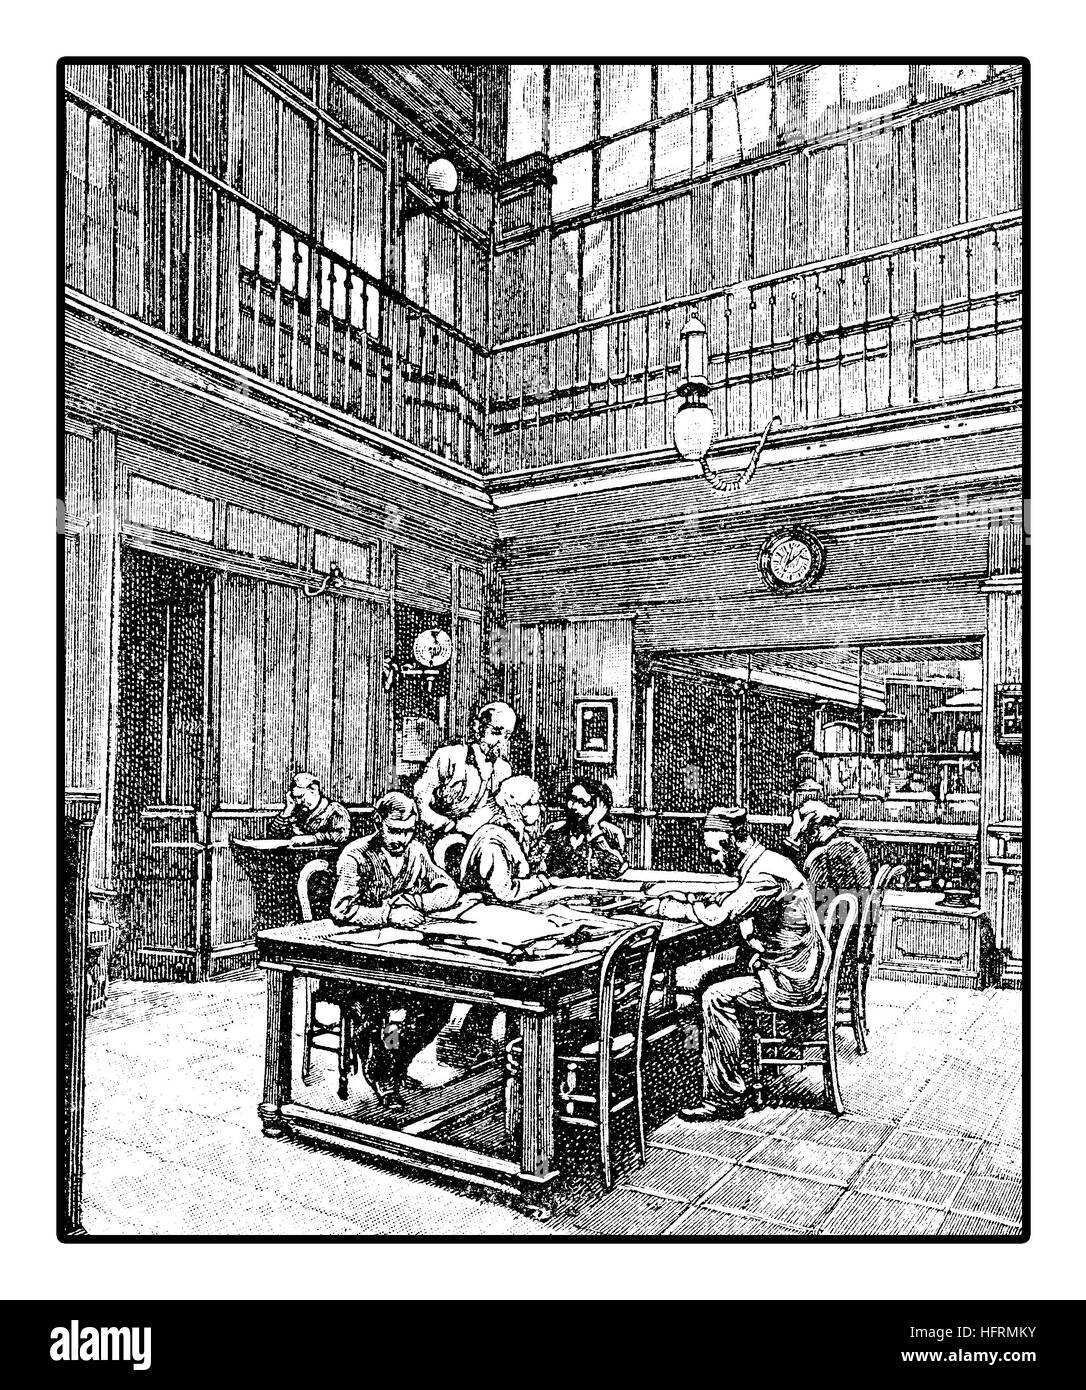 Editorial office of a newspaper with journalists composing their articles, vintage engraving - Stock Image